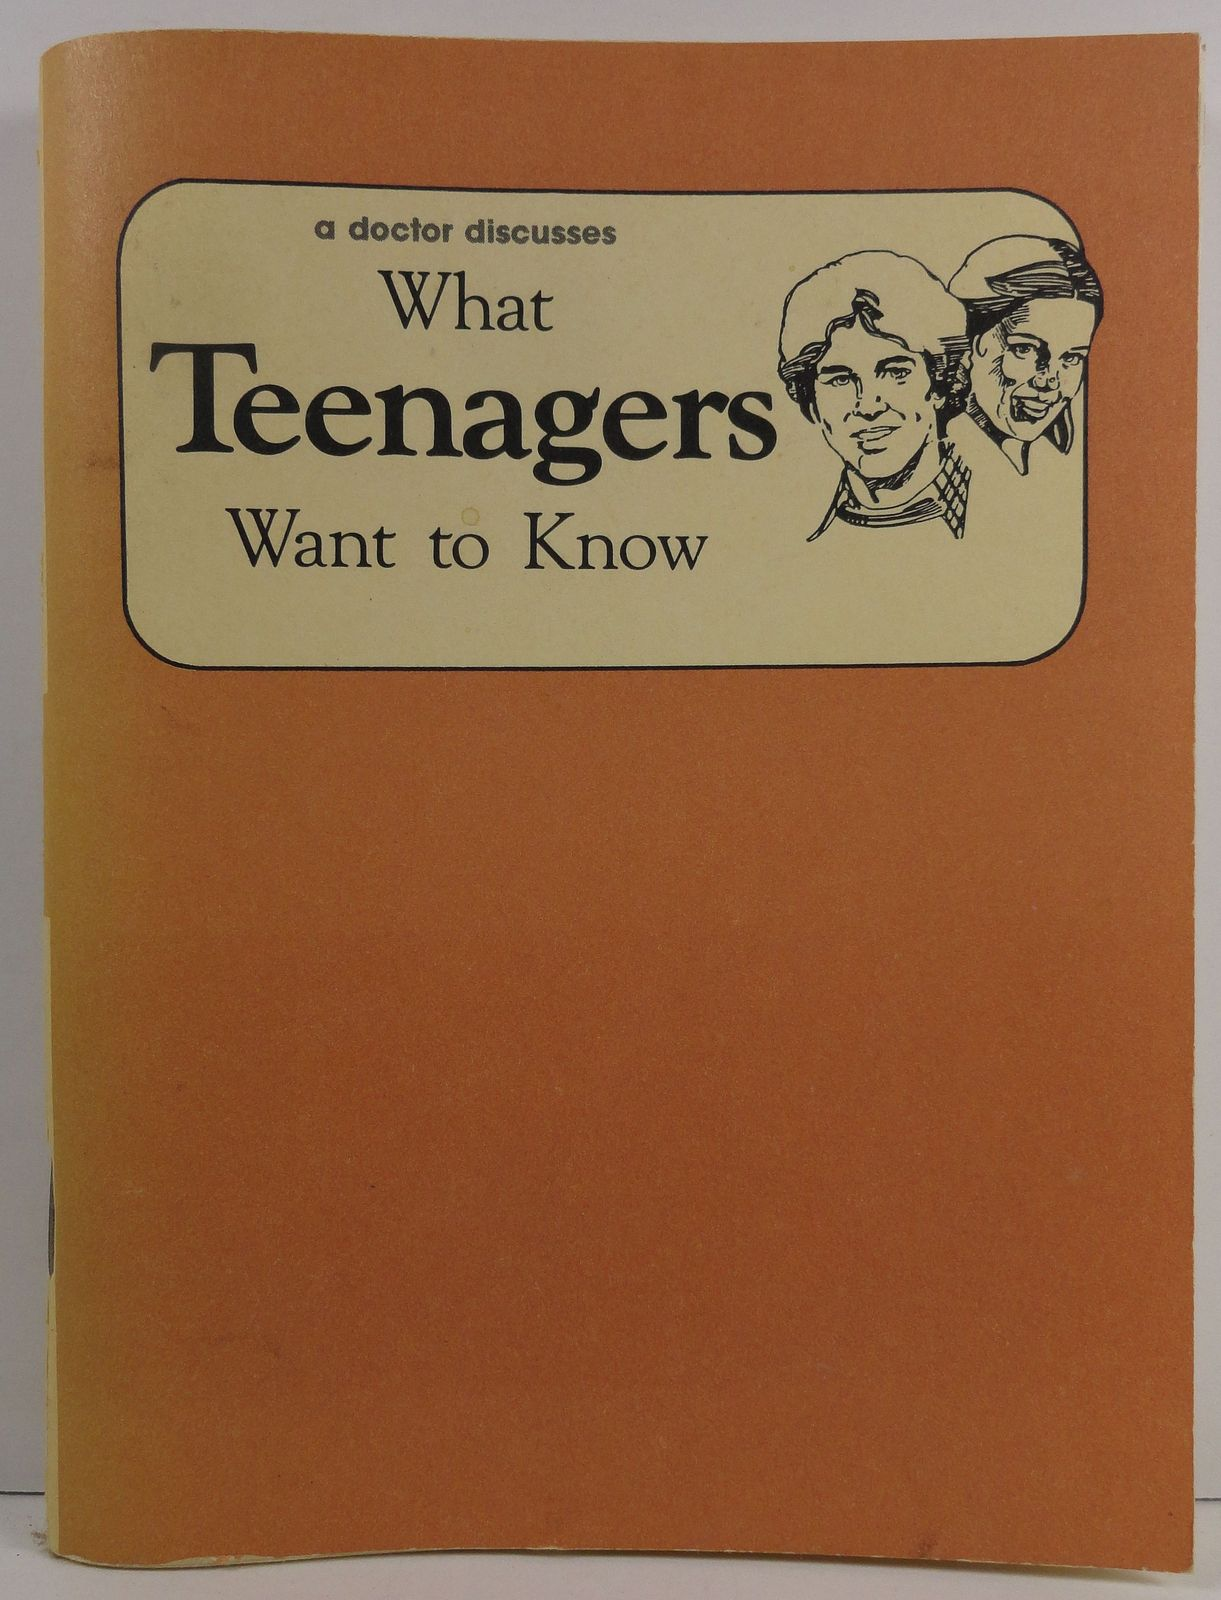 A Doctor Discusses What Teenagers Want to Know